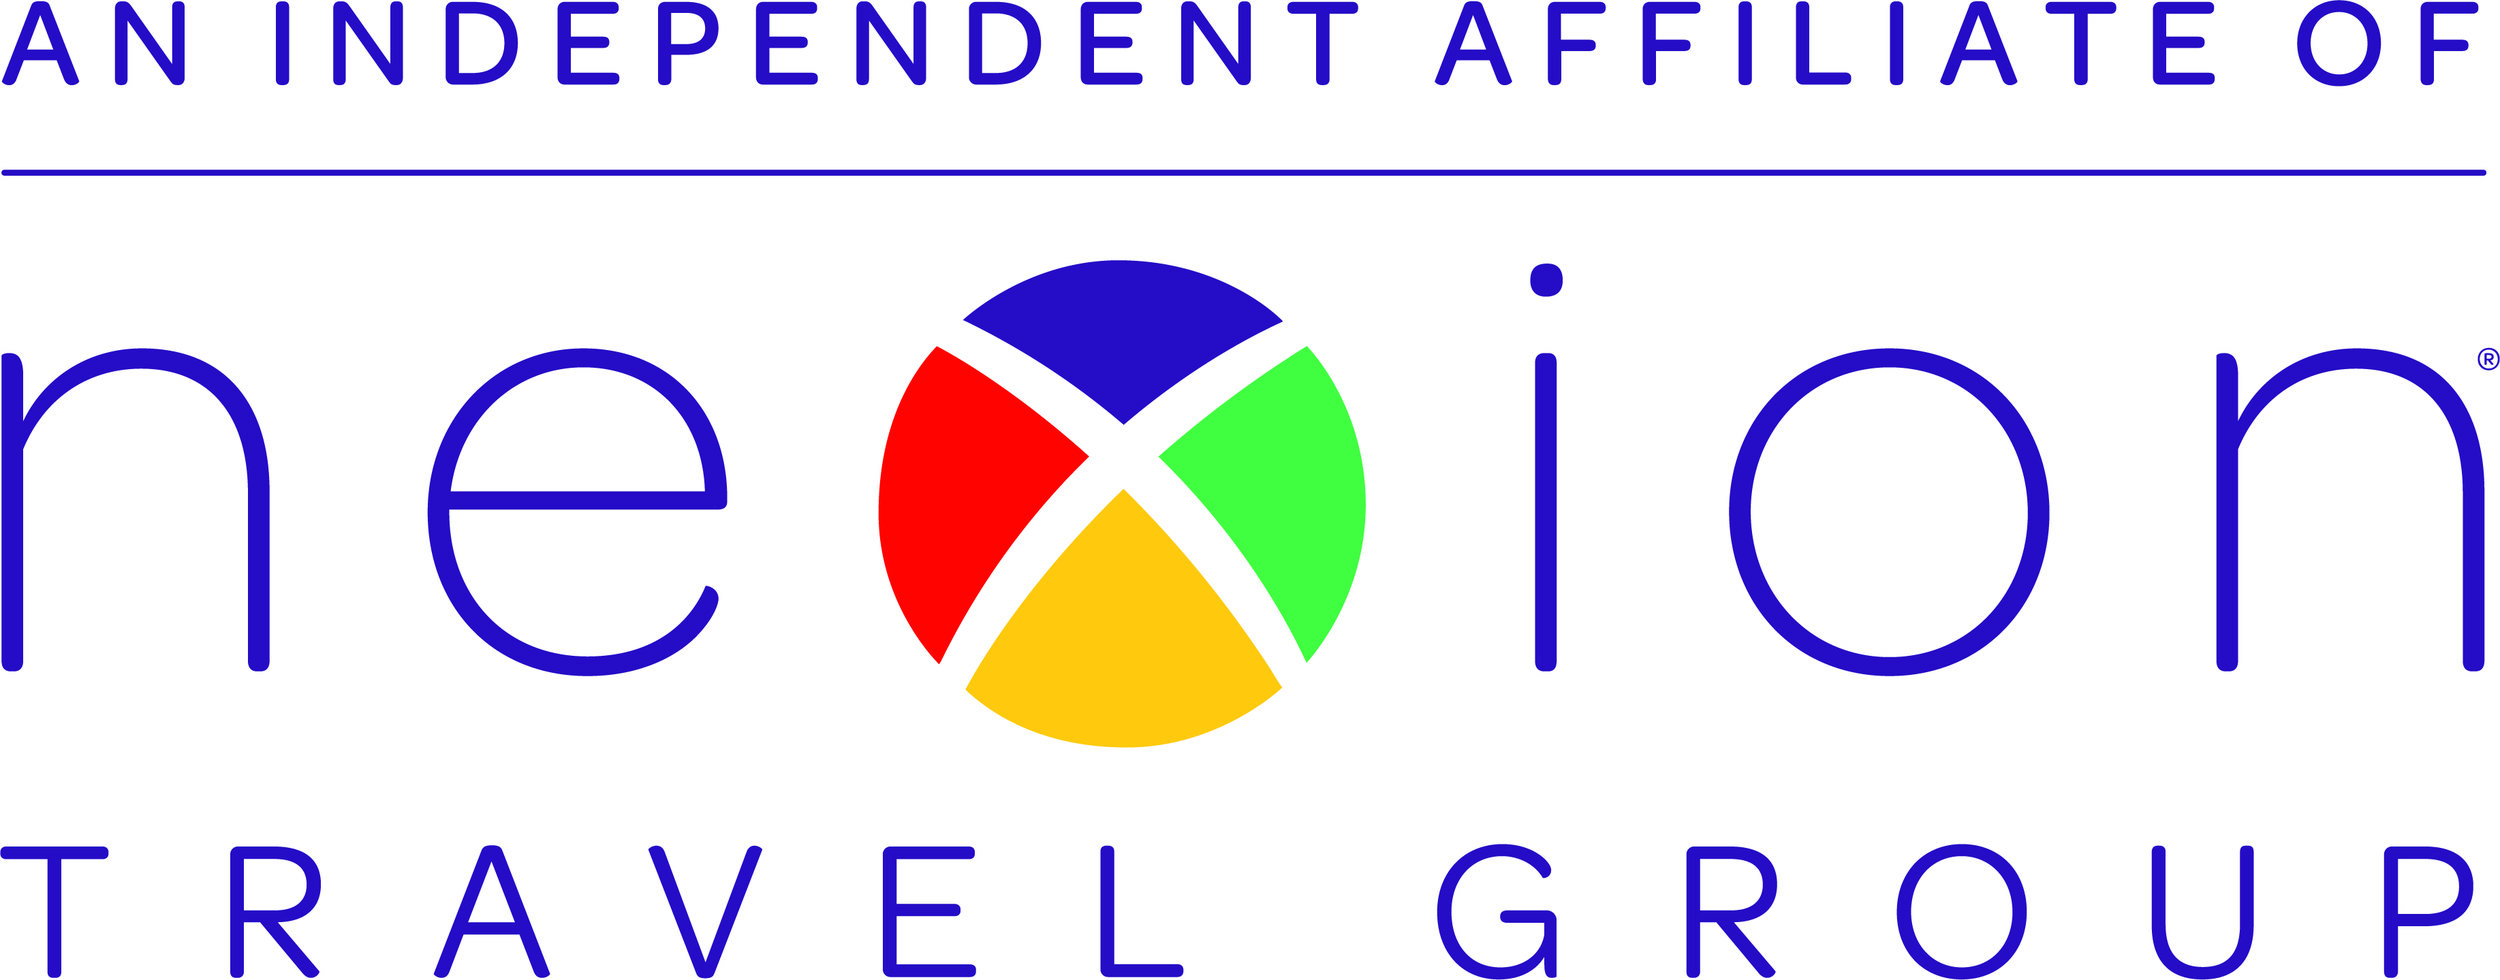 Nexion-Independent Affiliate-CMYK.jpg